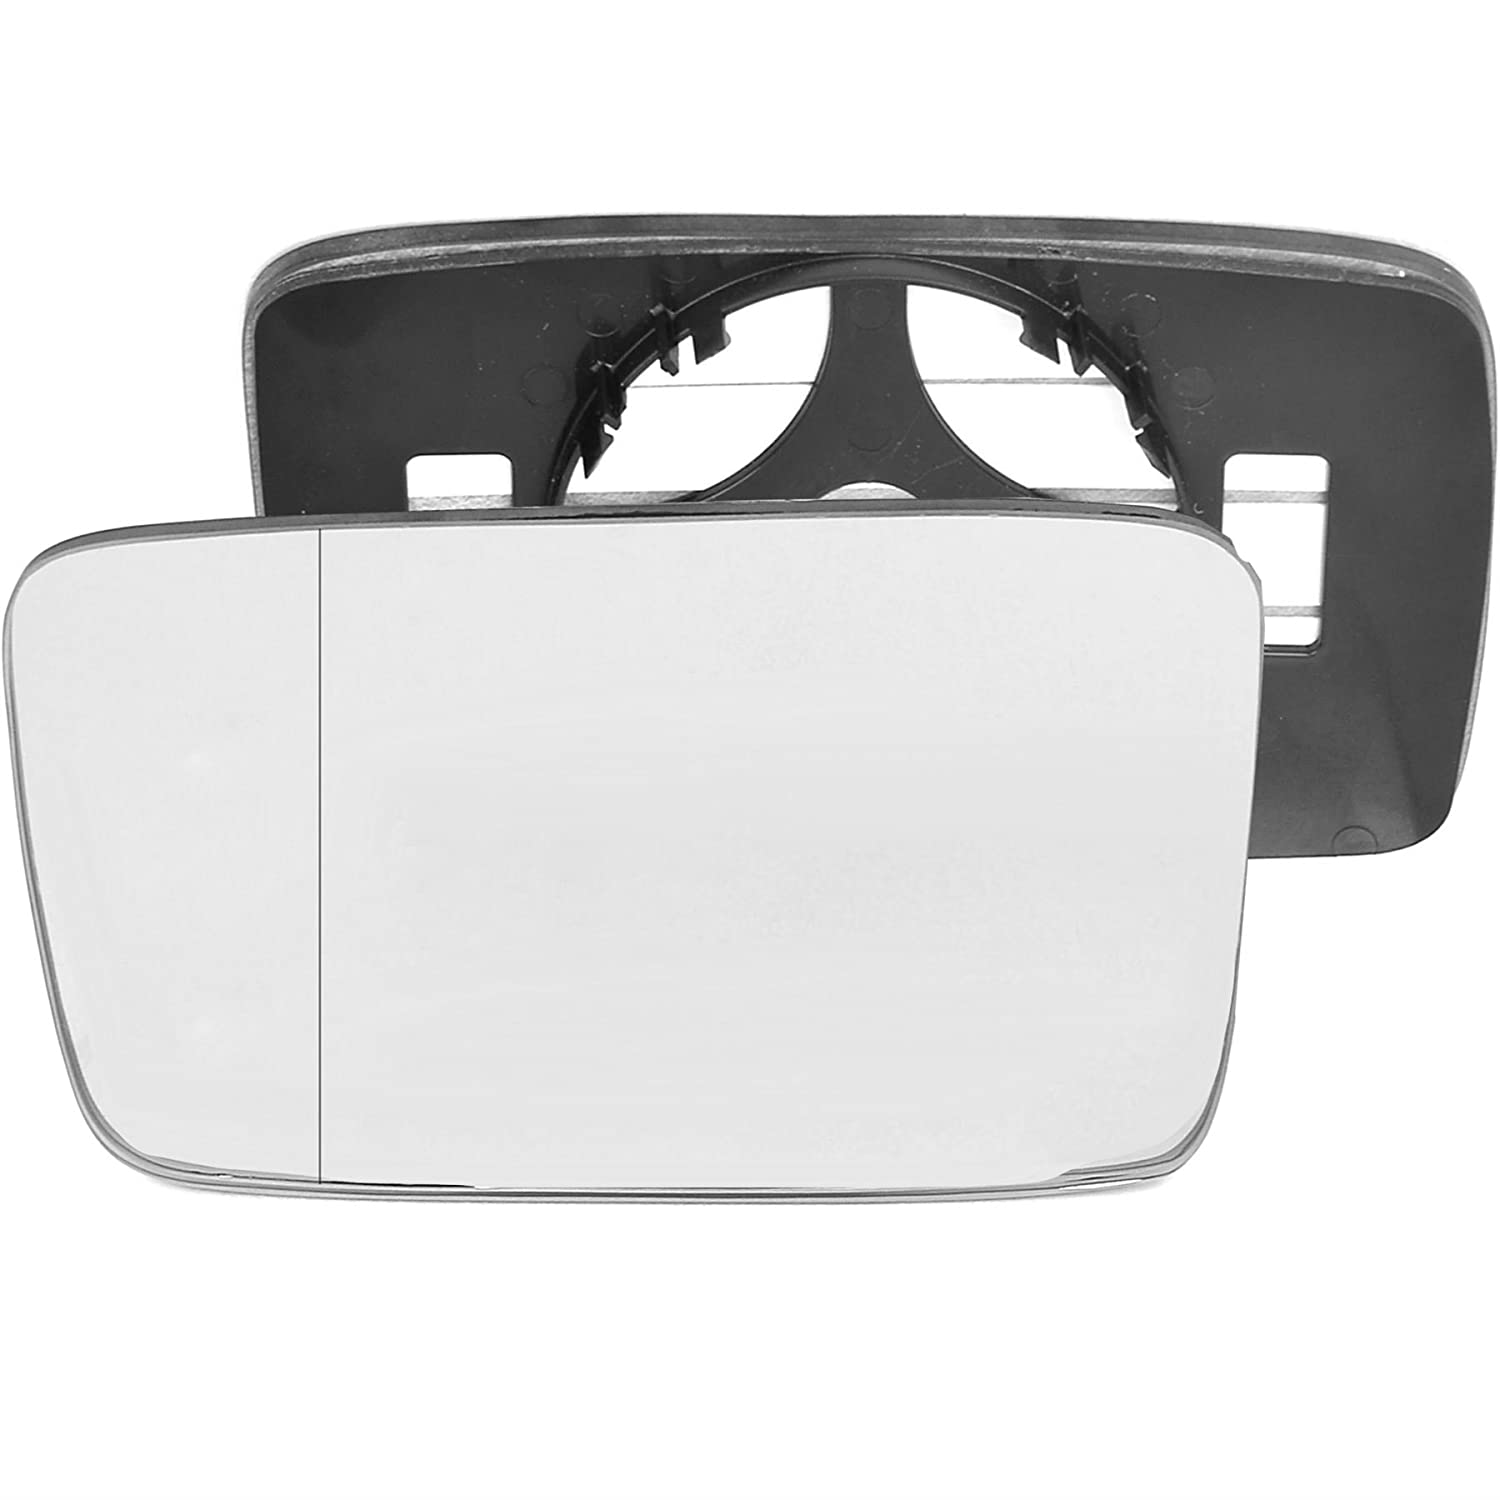 Passenger left hand side wing door Silver mirror glass with backing plate #W-SN/L-VNGF91 [Clip On] Sylgab